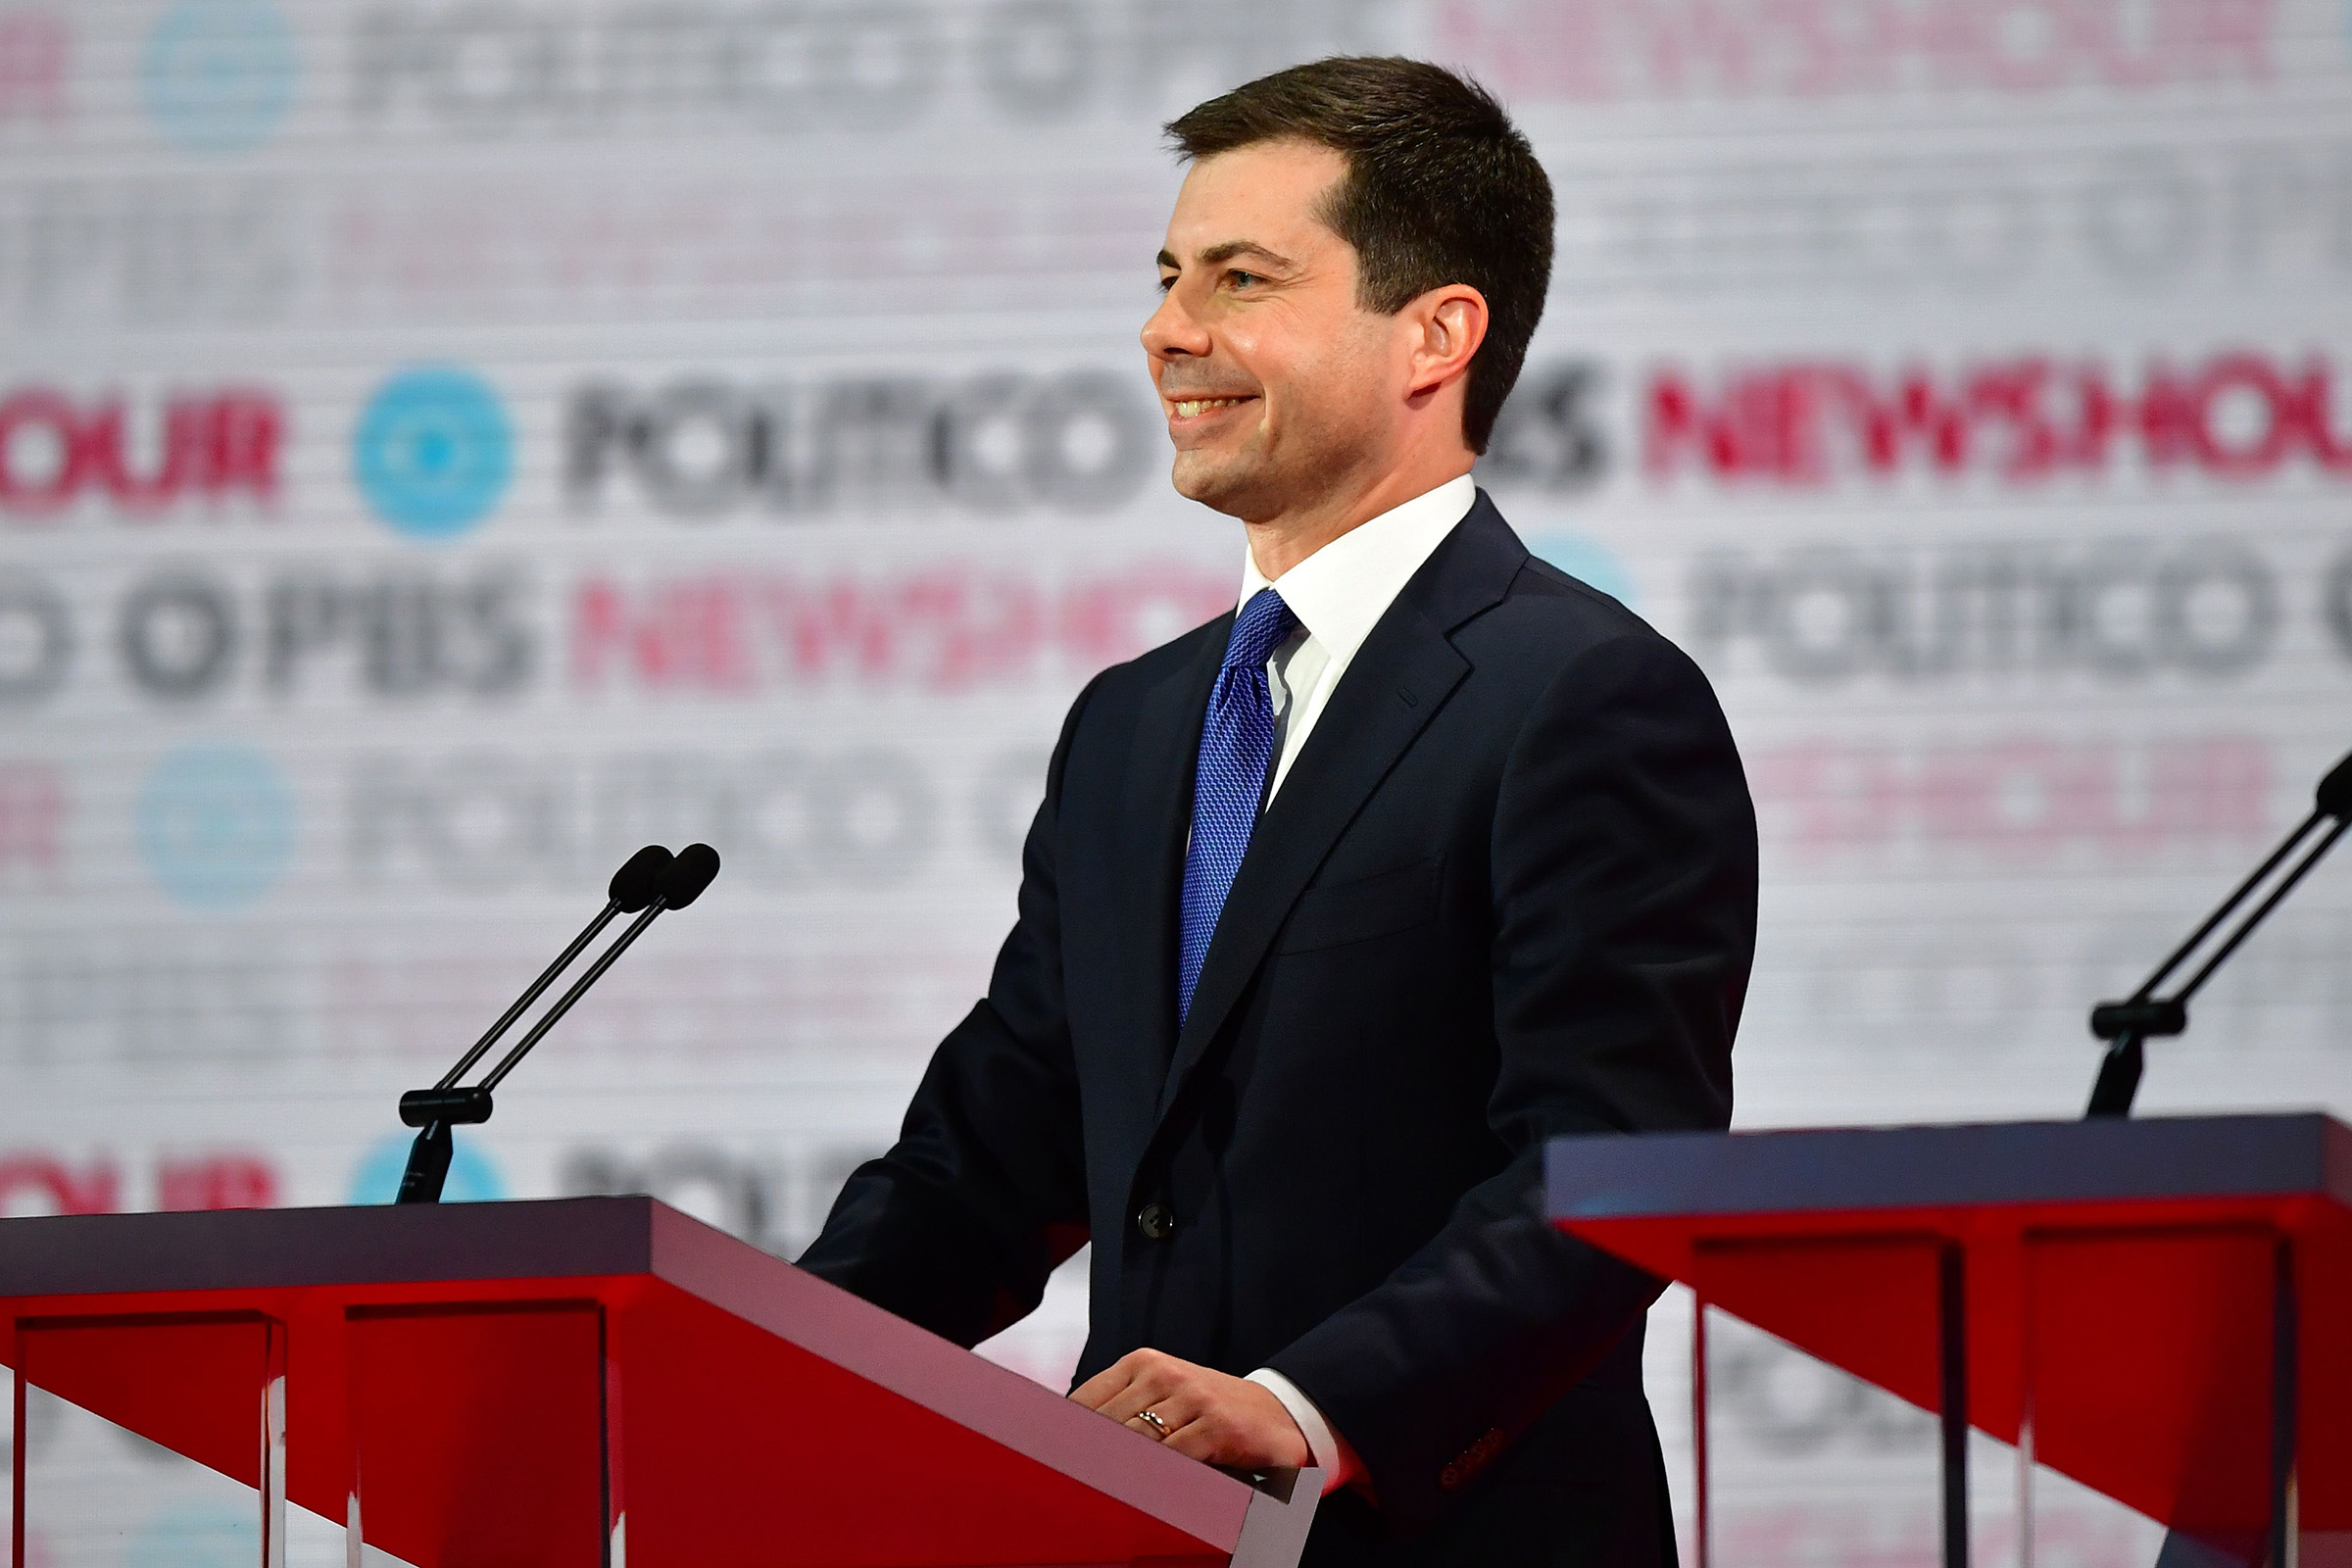 Democratic presidential hopeful South Bend, Indiana Pete Buttigieg participates of the sixth Democratic primary debate of the 2020 presidential campaign season in Los Angeles on Dec. 19, 2019.